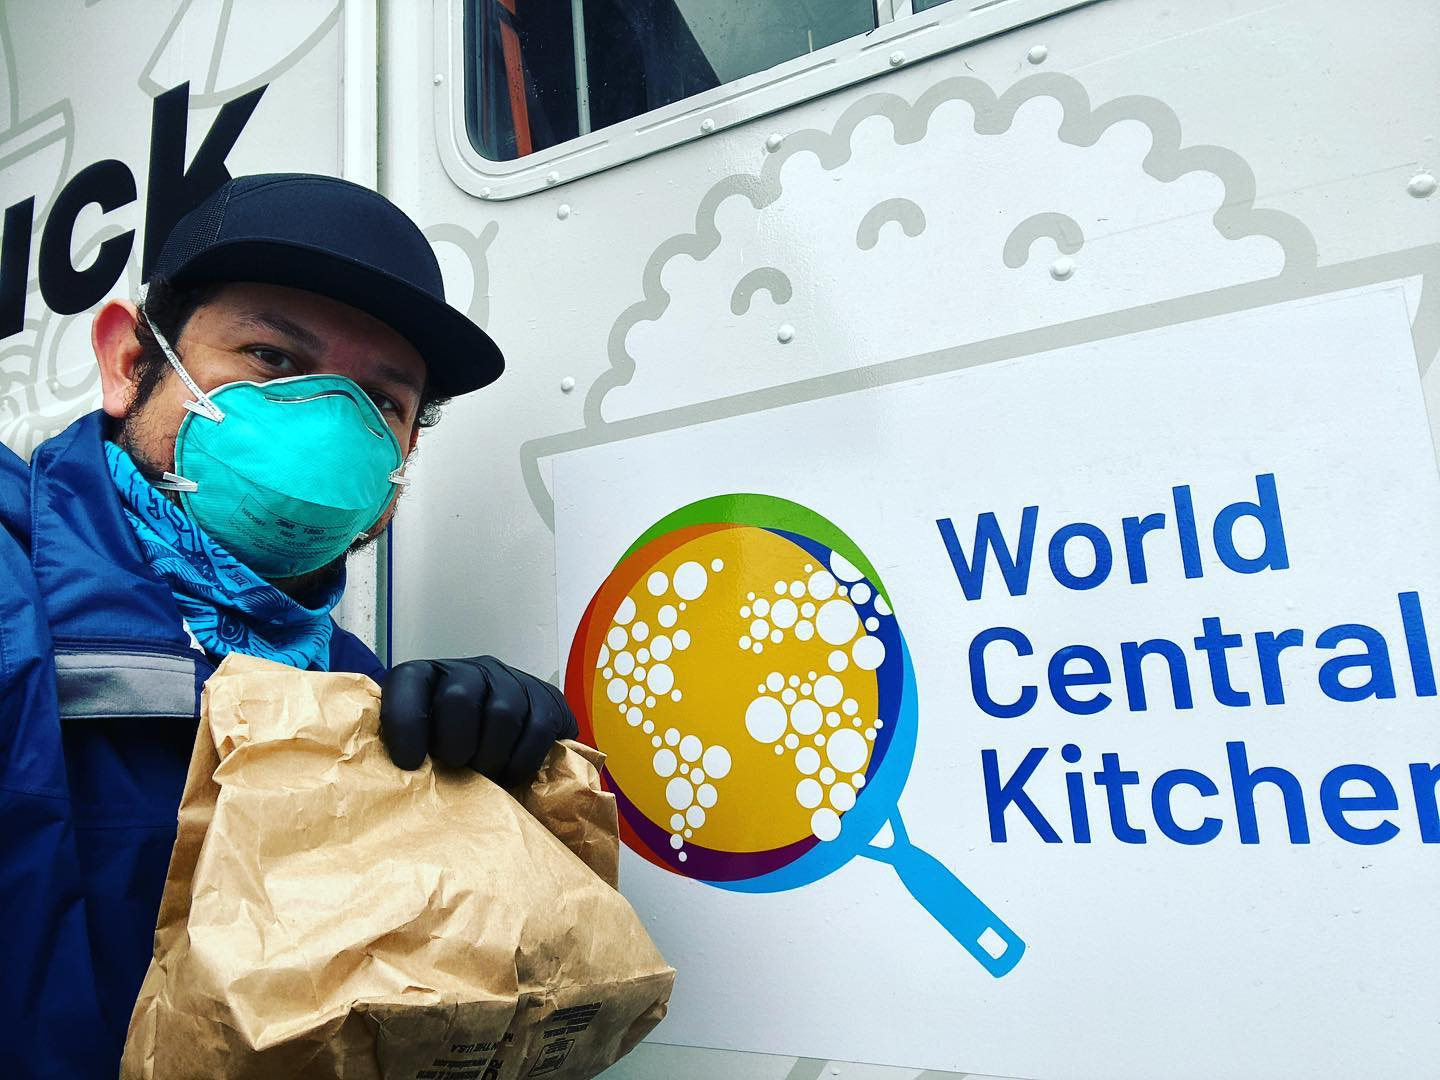 The Lab food truck distributing meals with World Central Kitchen